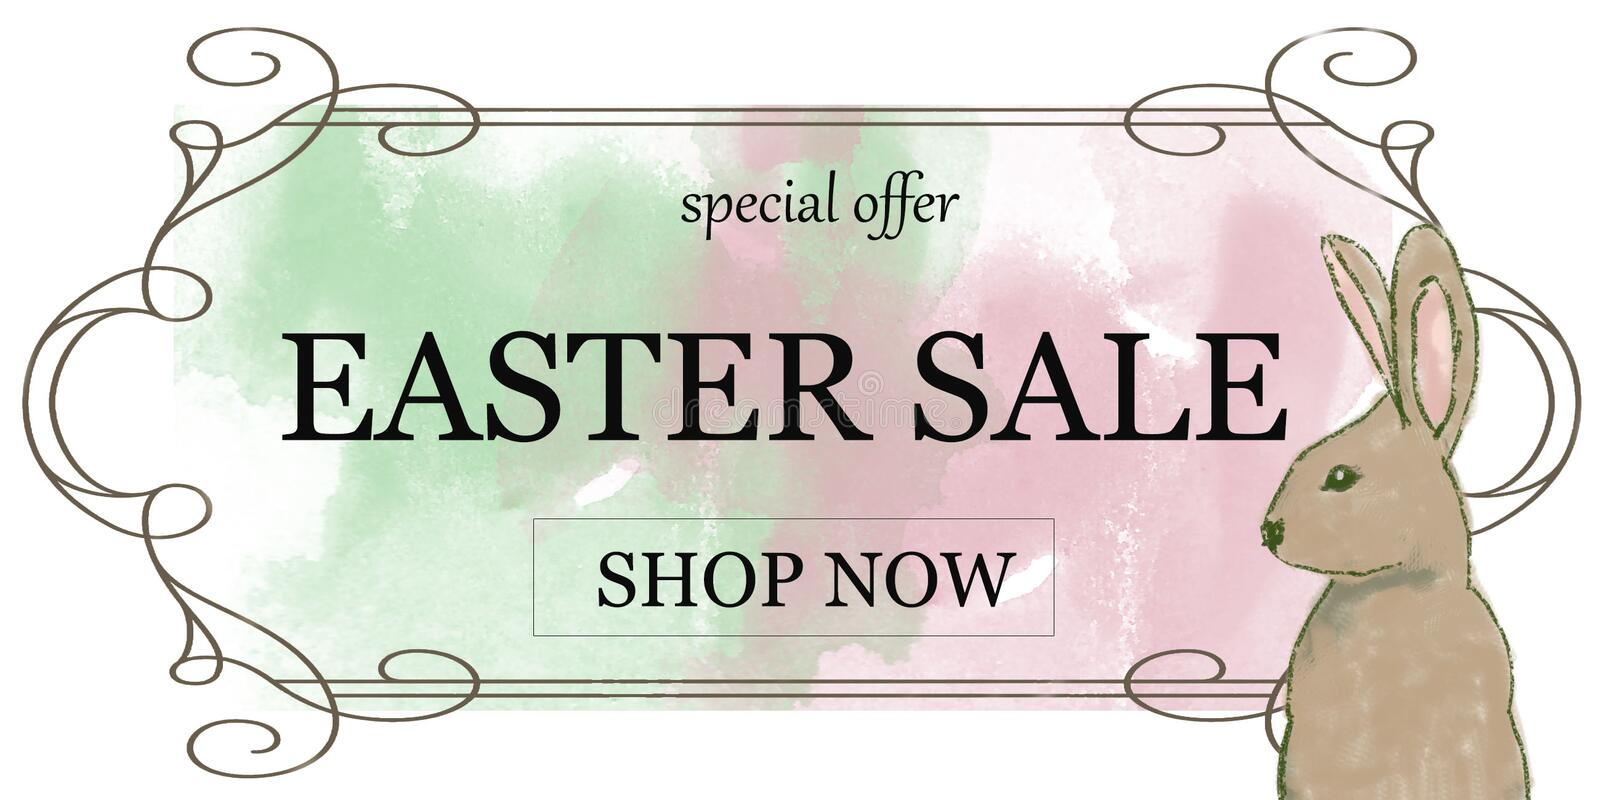 Easter sales banner/advert/poster with rabbit stock image